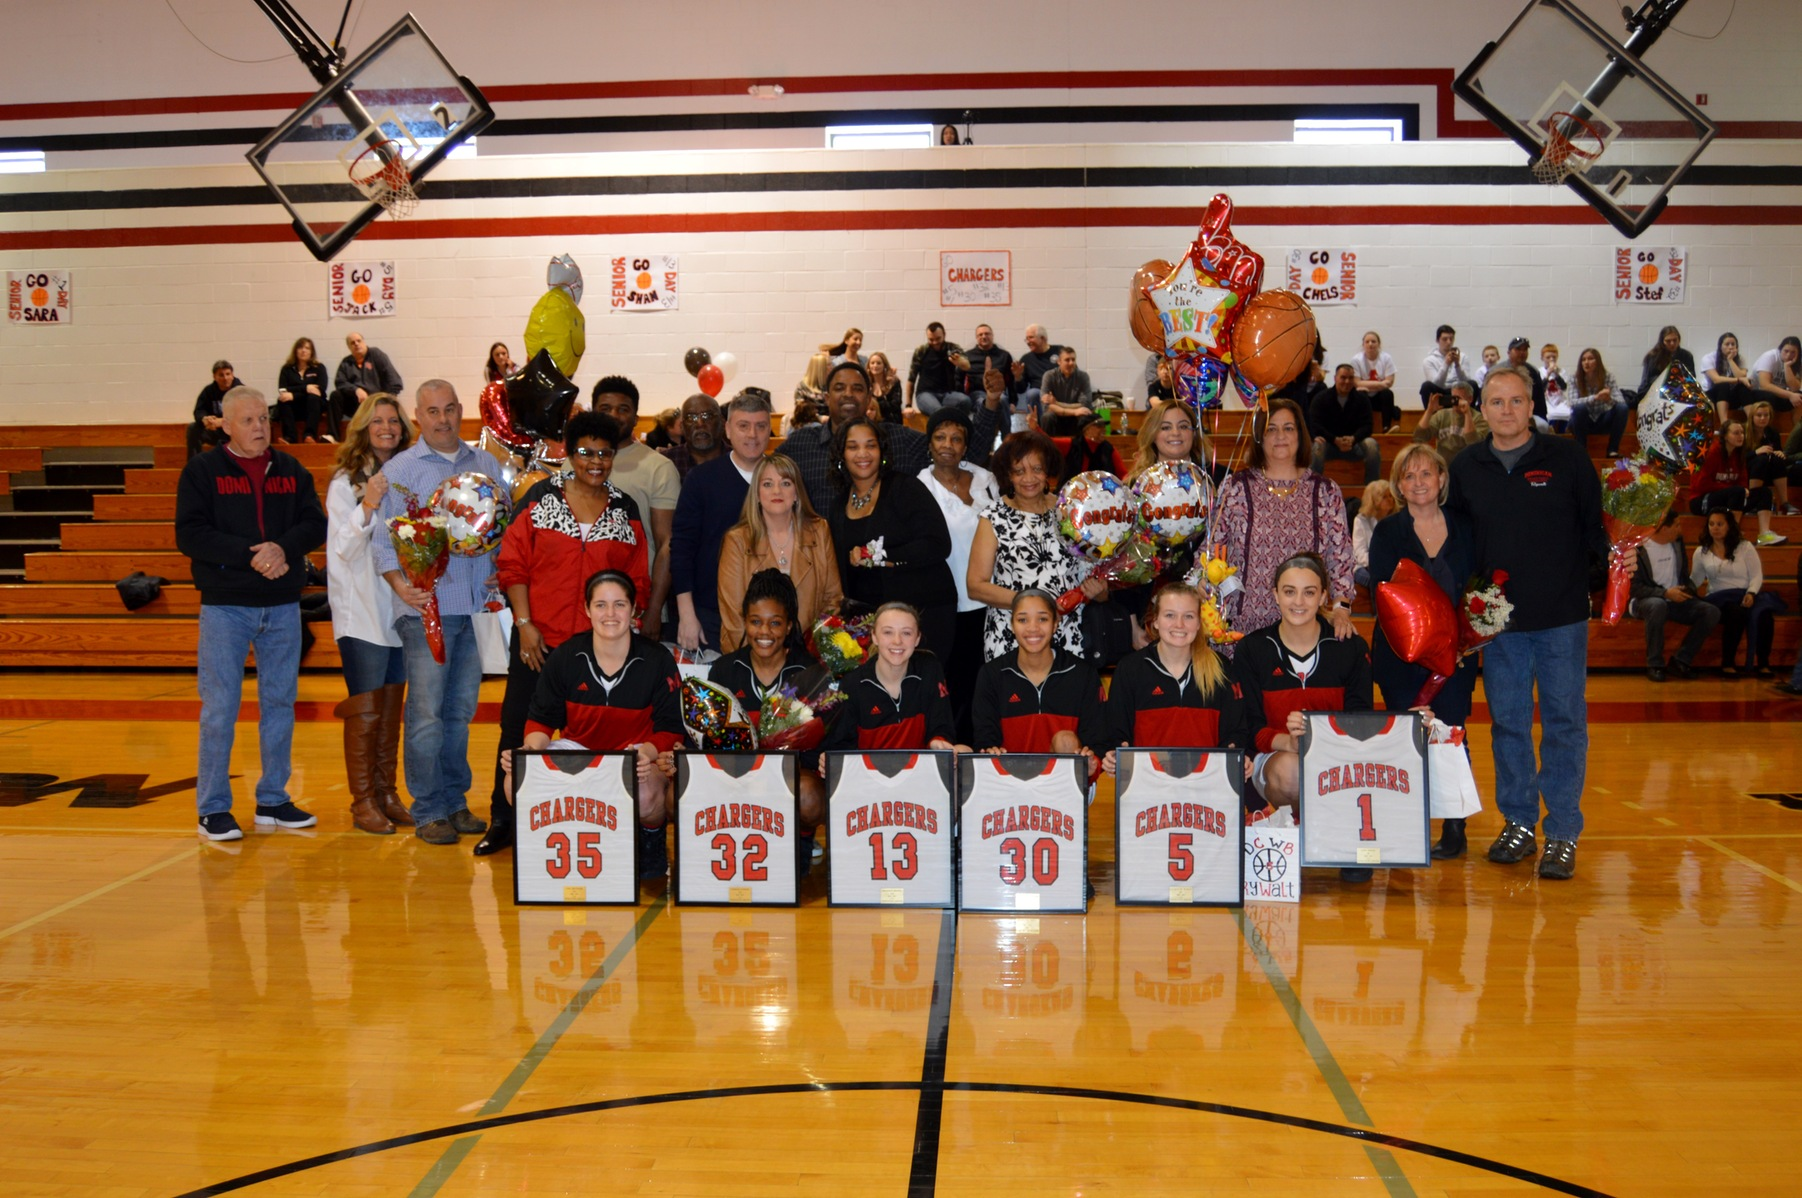 LADY CHARGERS WIN ON SENIOR DAY